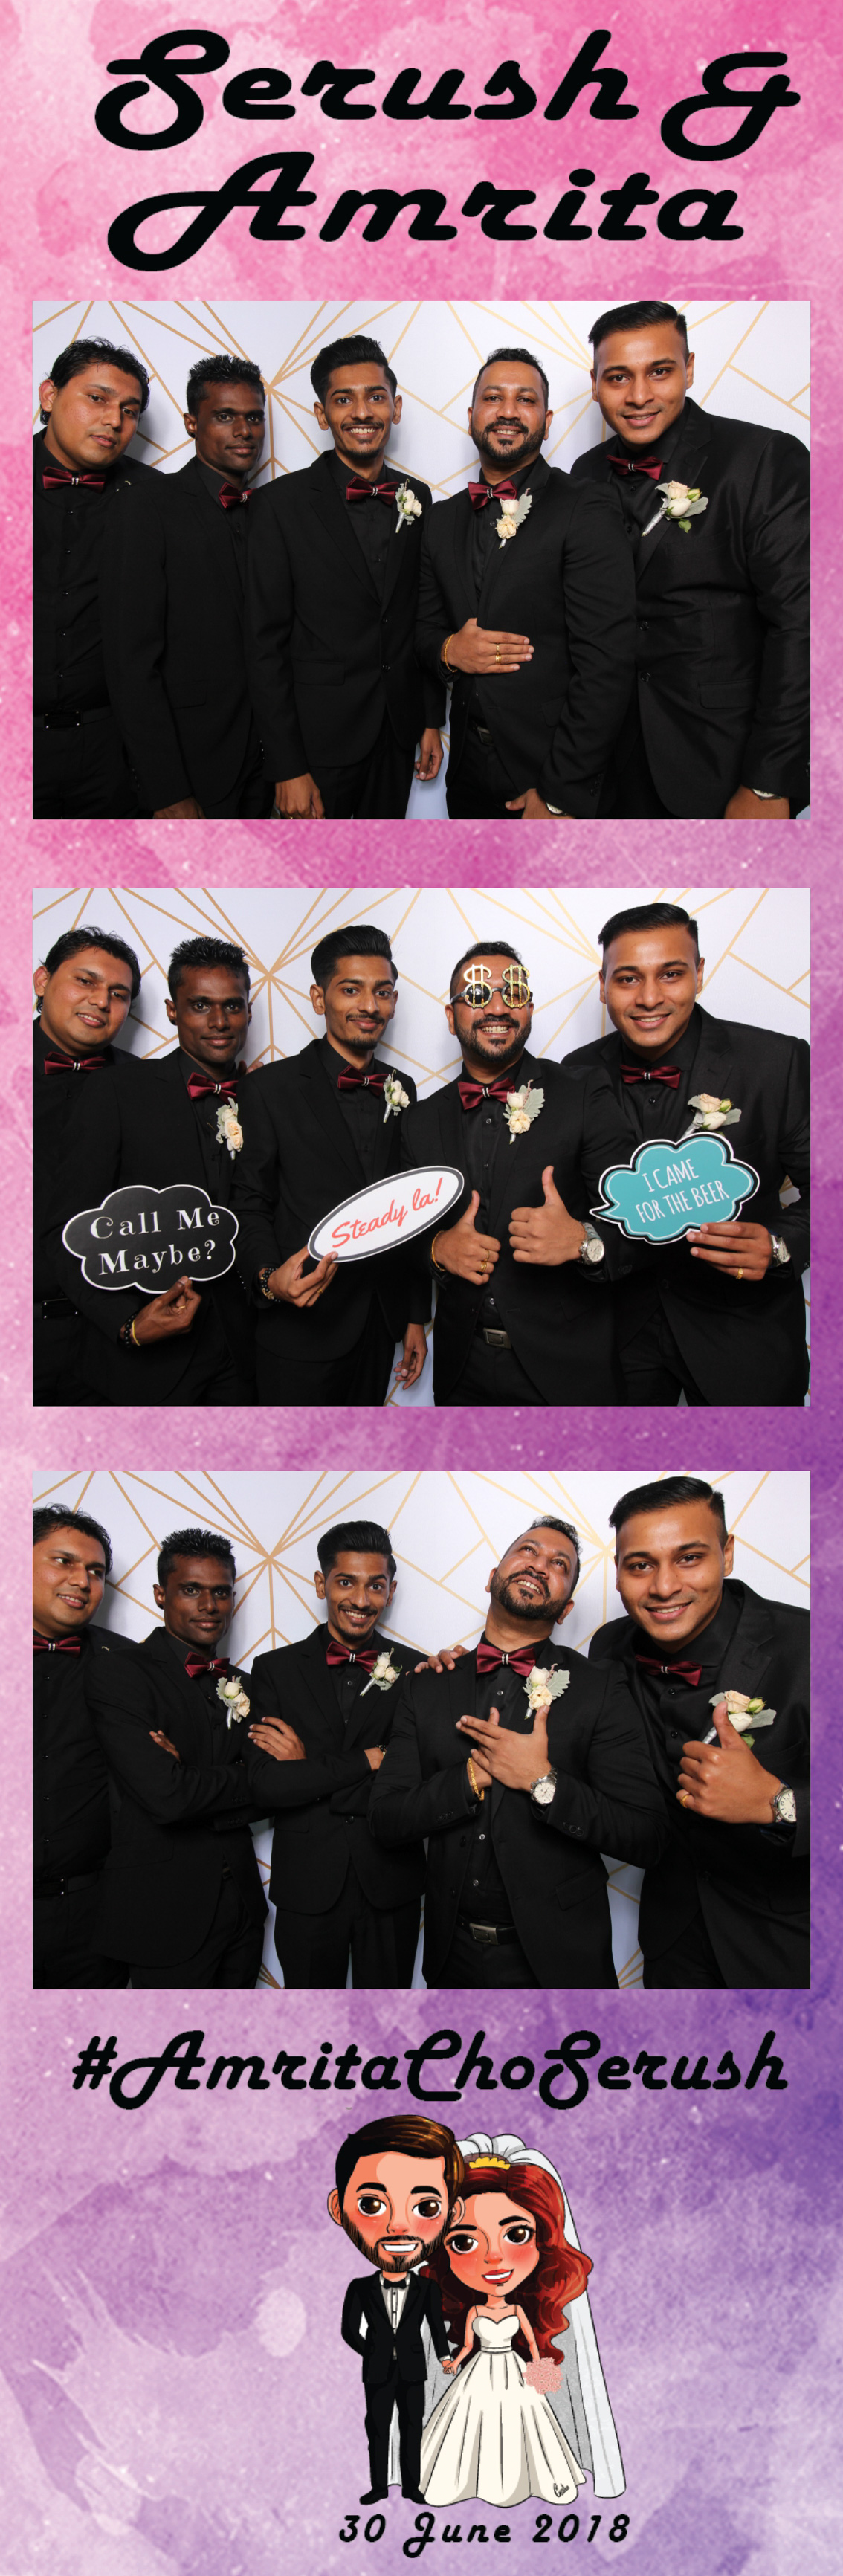 whoots photo booth singapore wedding (20